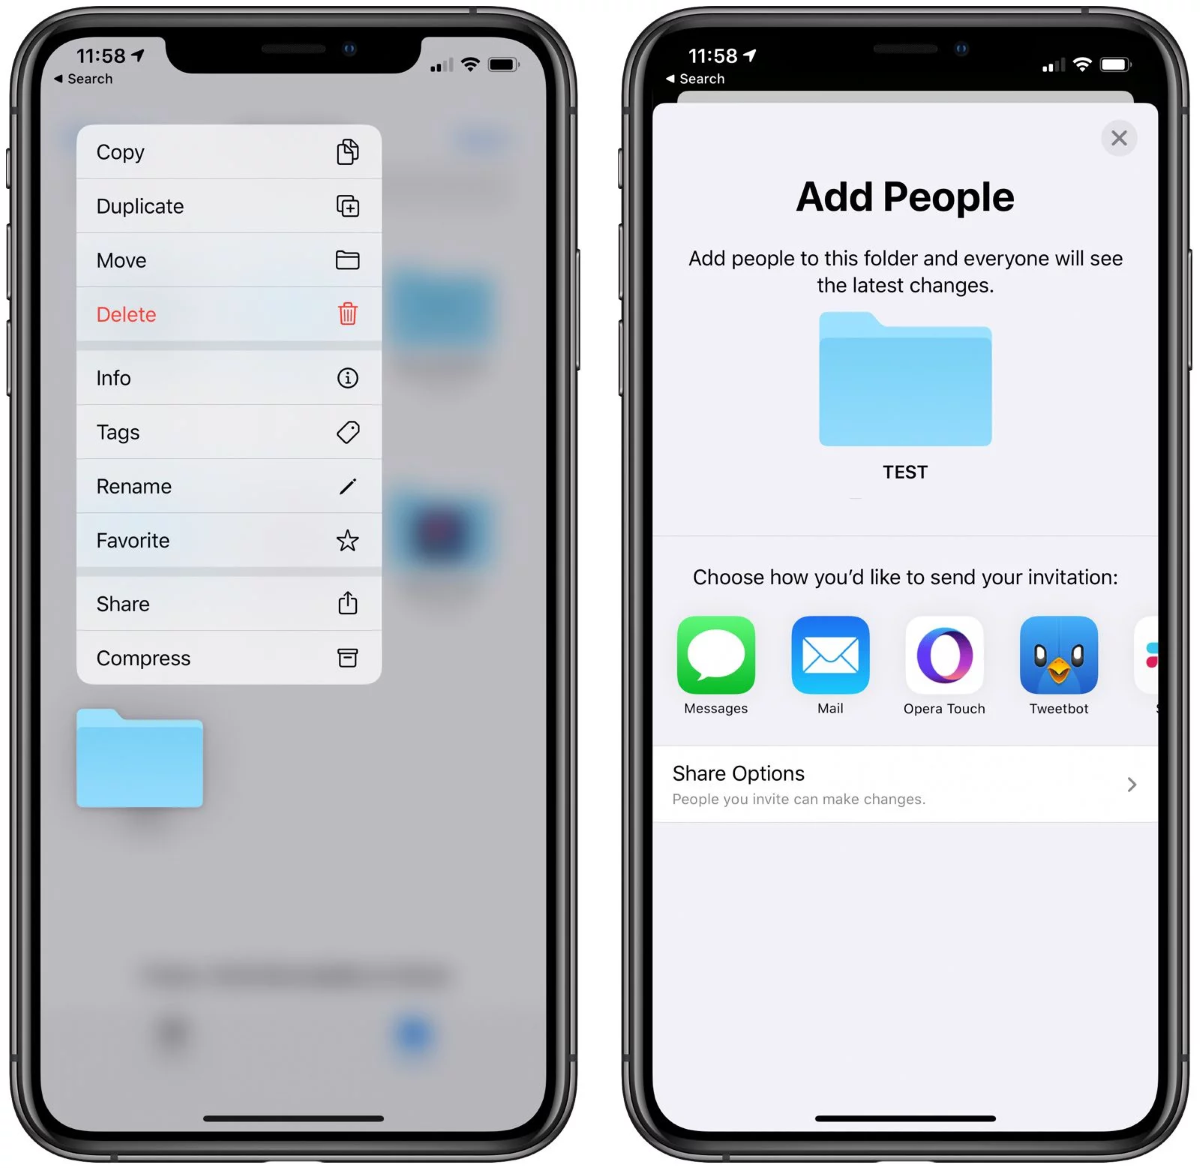 iPadOS and iOS 13.4 Public Beta Versions - New iCloud Folder Sharing feature